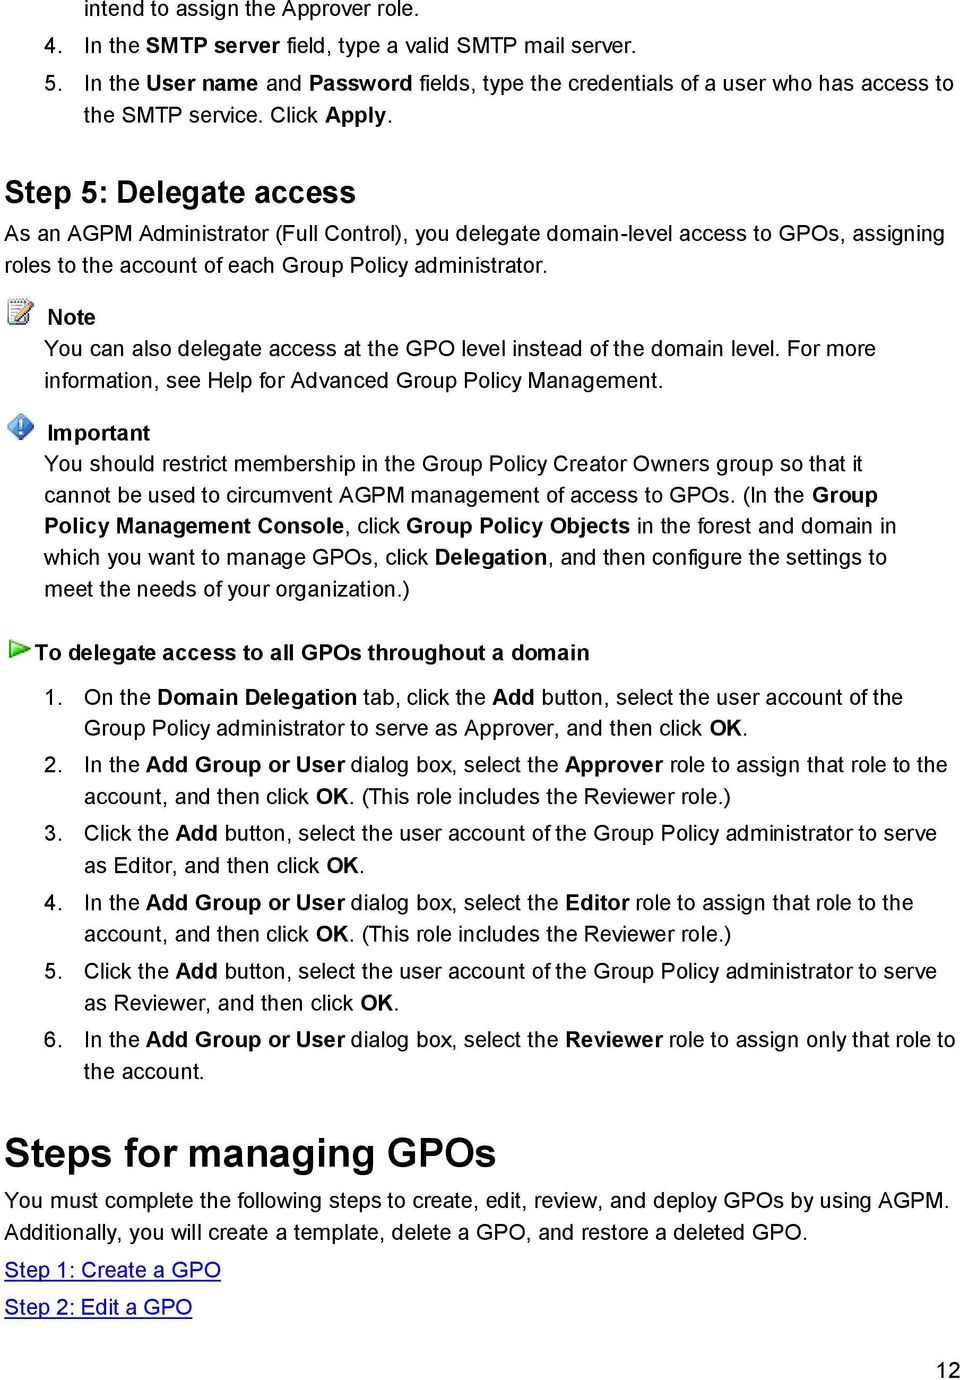 Step 5: Delegate access As an AGPM Administrator (Full Control), you delegate domain-level access to GPOs, assigning roles to the account of each Group Policy administrator.